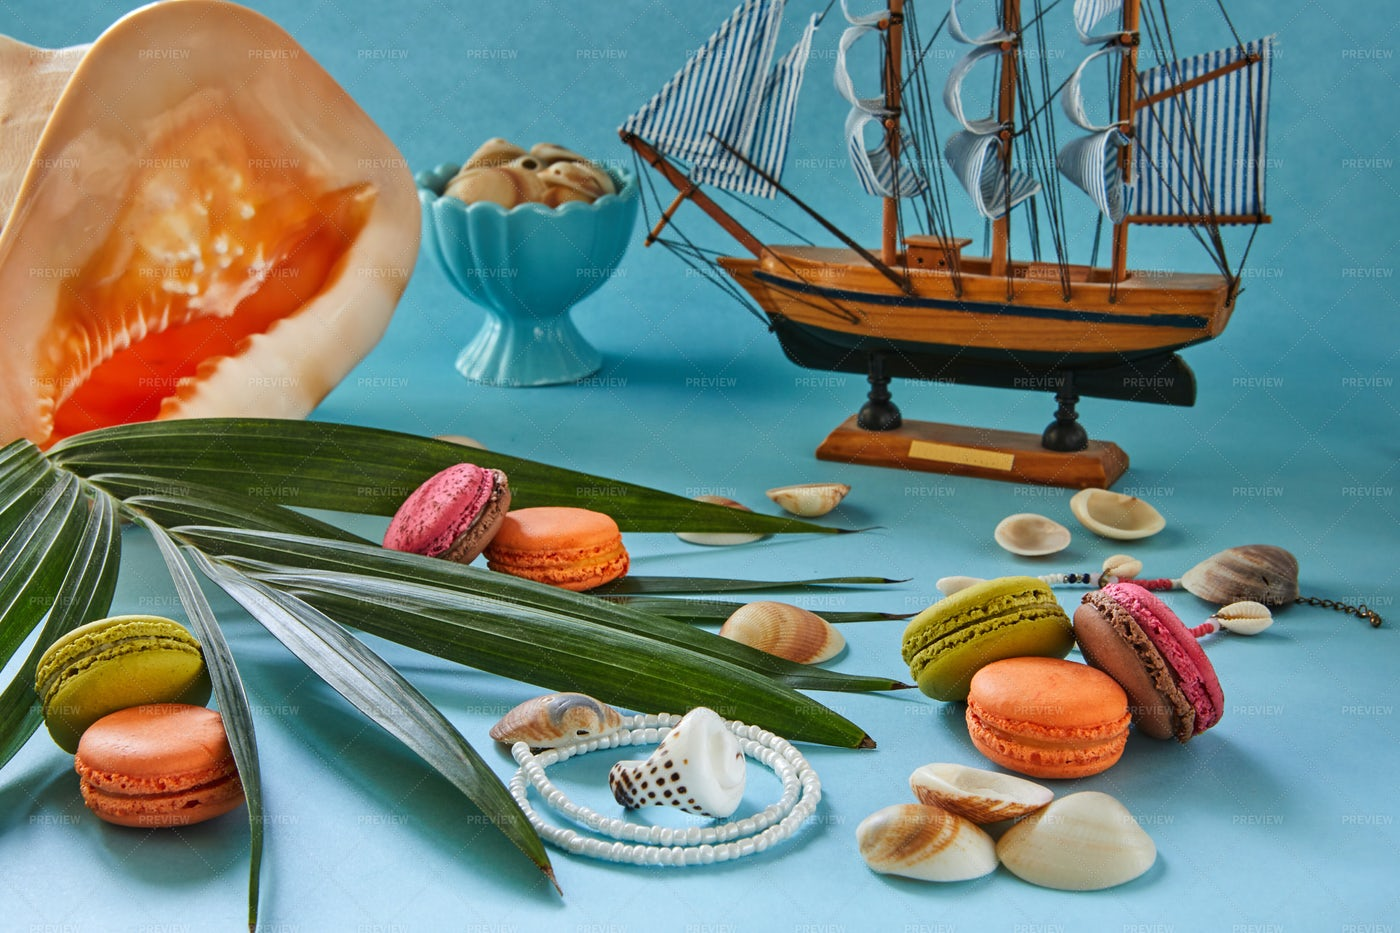 Sweets And Beach Items: Stock Photos